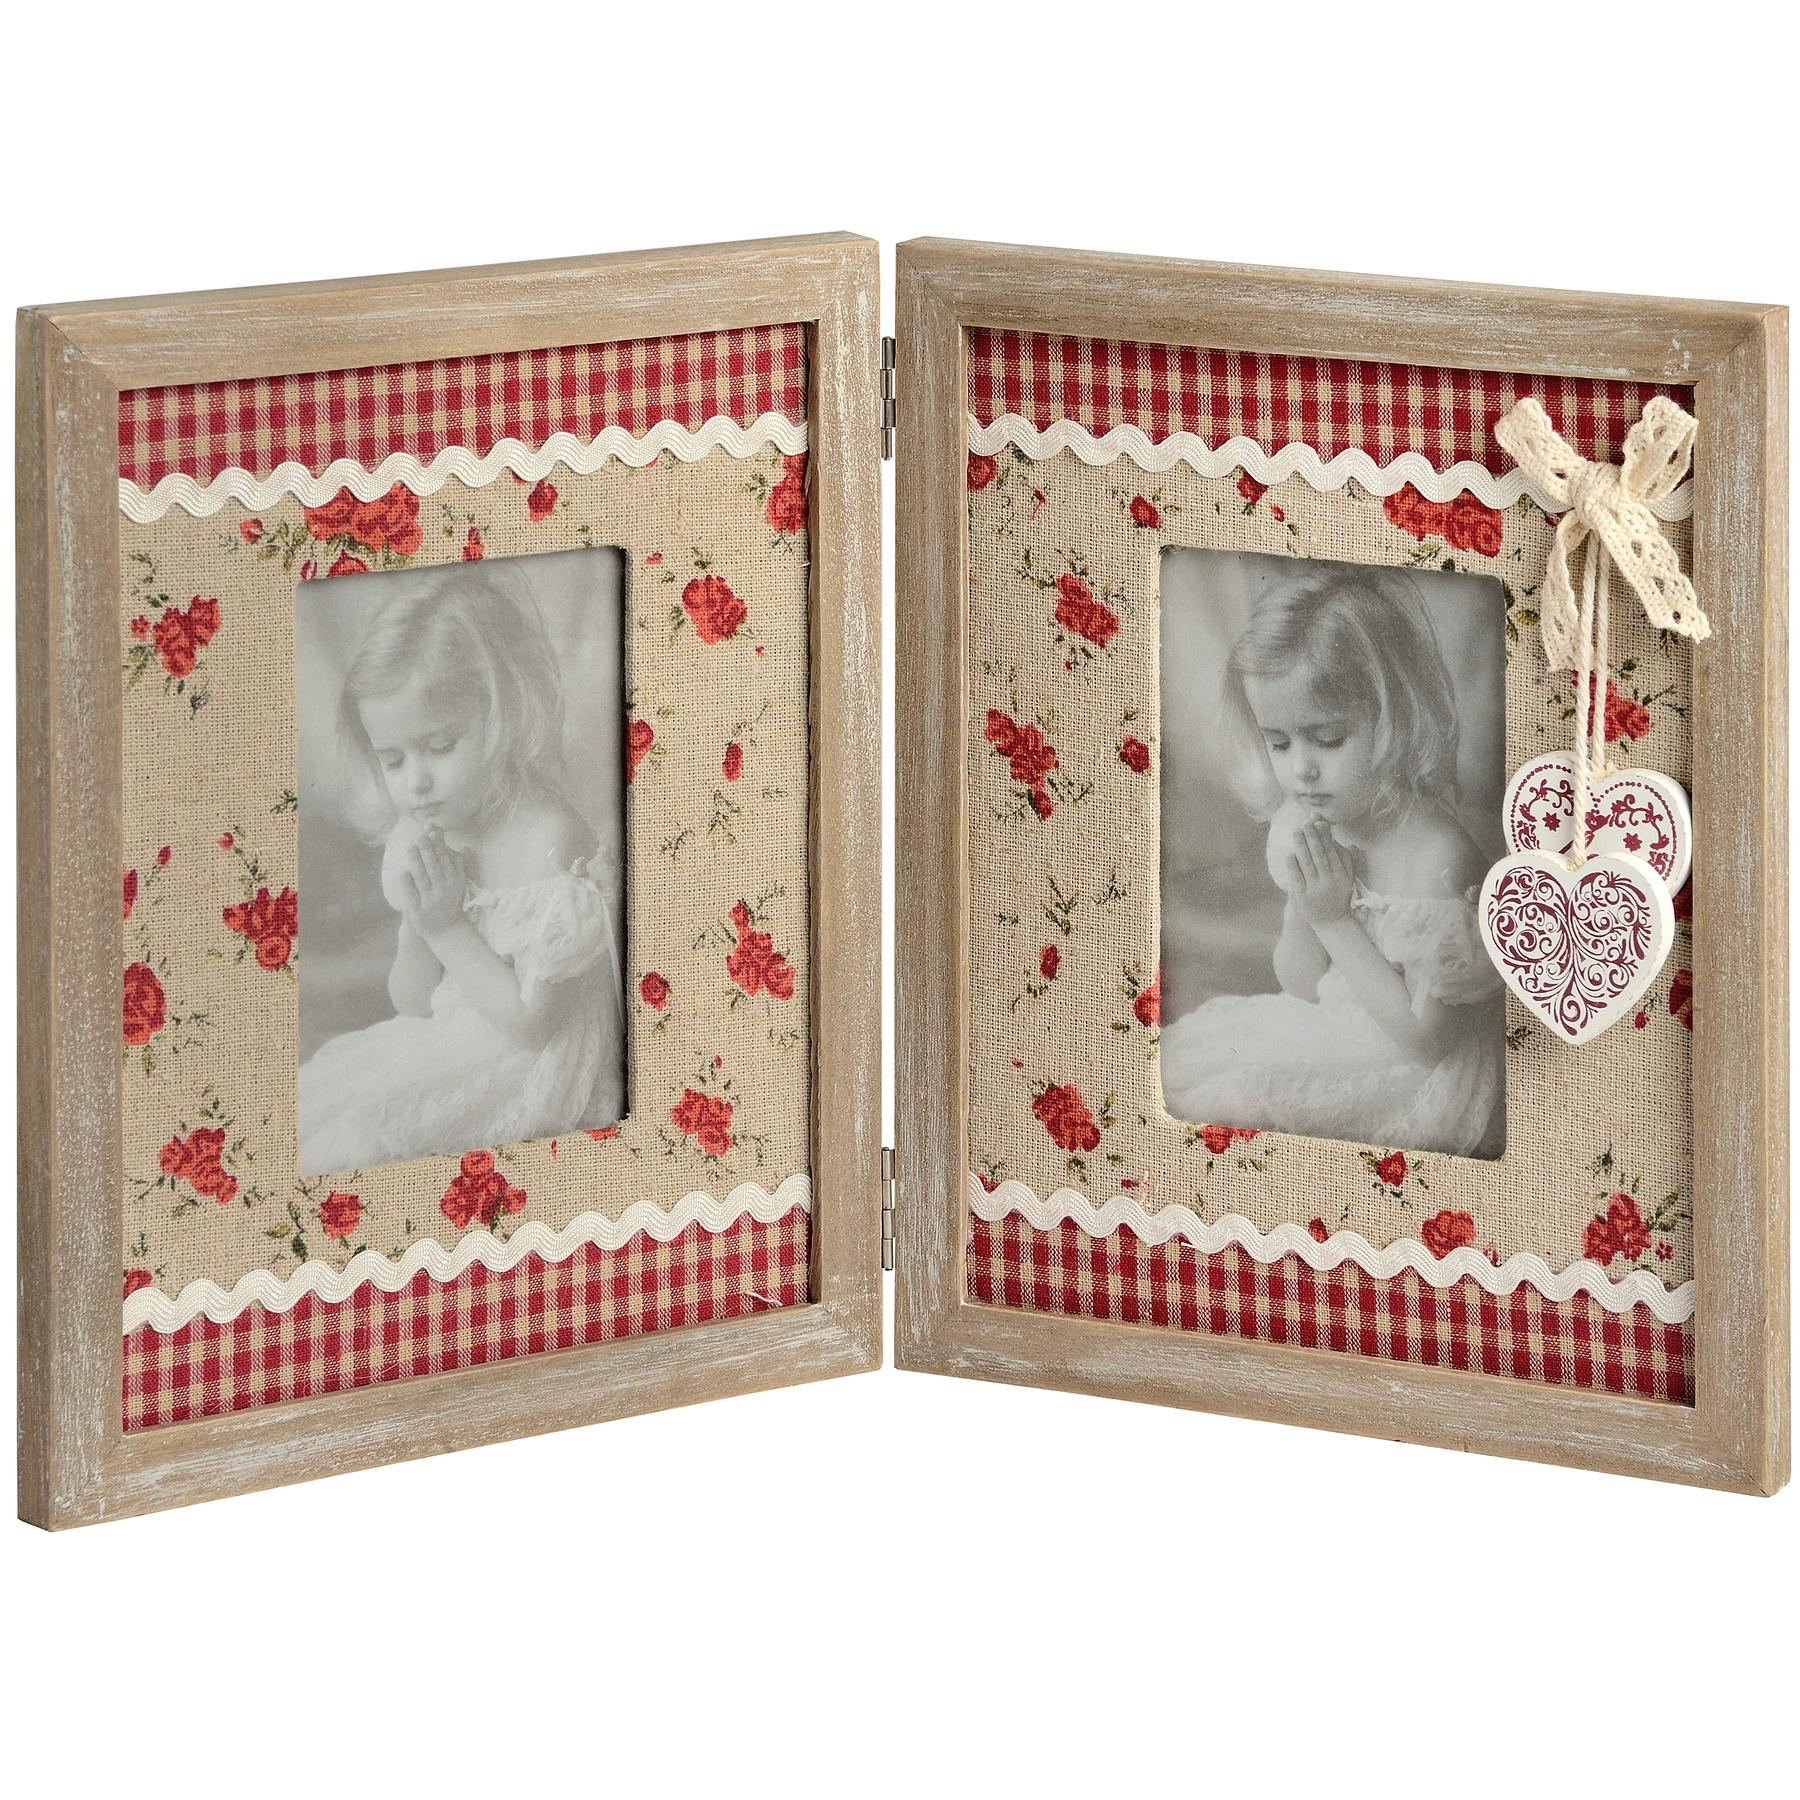 Double floral fabric portrait photo frame with hearts adornment